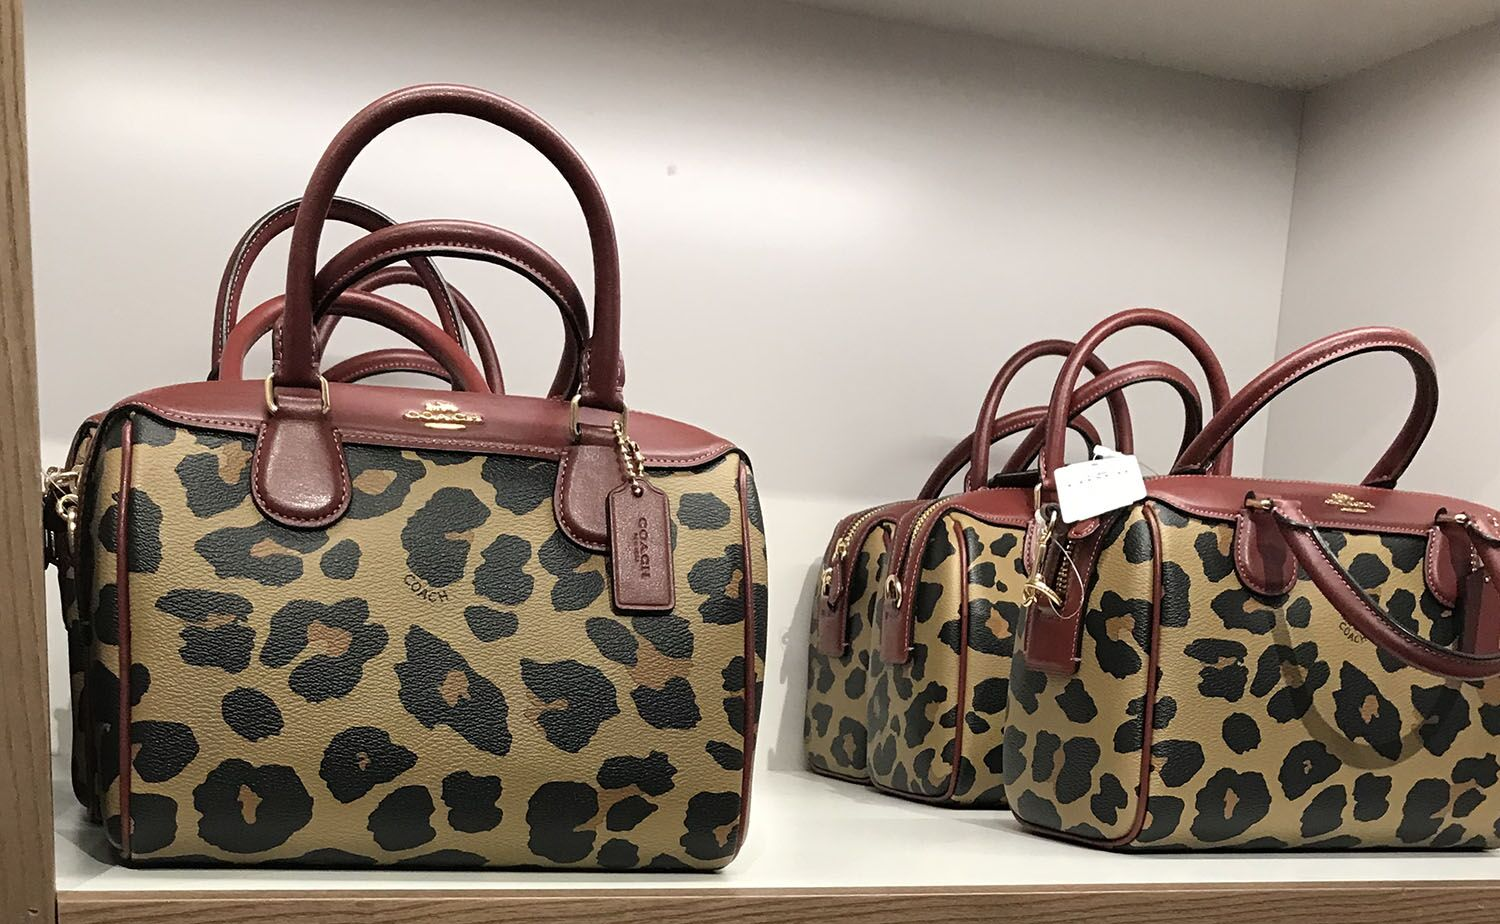 Animal prints are trending on all types of accessories such as purses, shoes, belts and fanny packs. Coach recently released a collection of handbags that consist of an animal print pattern.